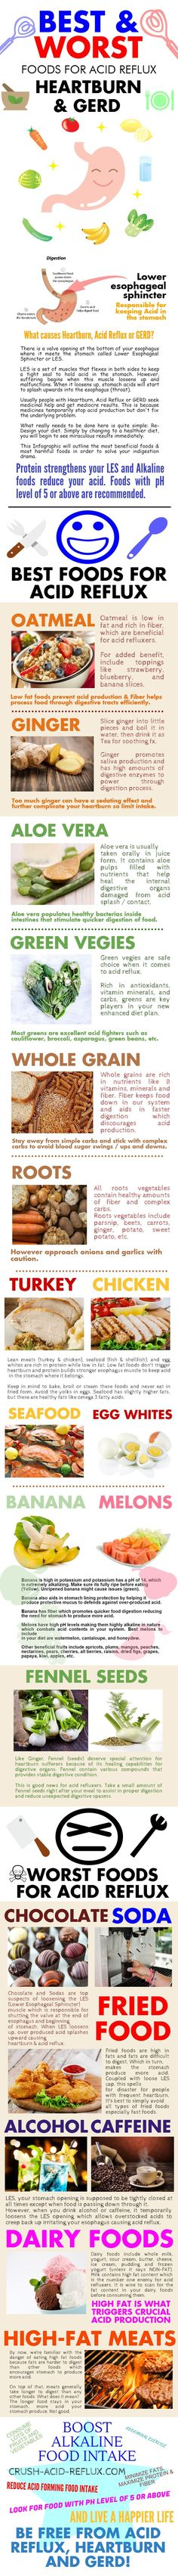 Idk how I'm gonna avoid the bad stuff…here goes… Infographic: Best & Worst Foods for Acid Reflux, Heartburn, and GERD. Idk how I'm gonna avoid the bad stuff…here goes… Infographic: Best & Worst Foods for Acid Reflux, Heartburn, and GERD. Low Acid Recipes, Acid Reflux Recipes, Gastritis Diet, Ulcer Diet, Gerd Diet, Stop Acid Reflux, Acid Reflux Remedies, Natural Remedies For Heartburn, Reflux Diet